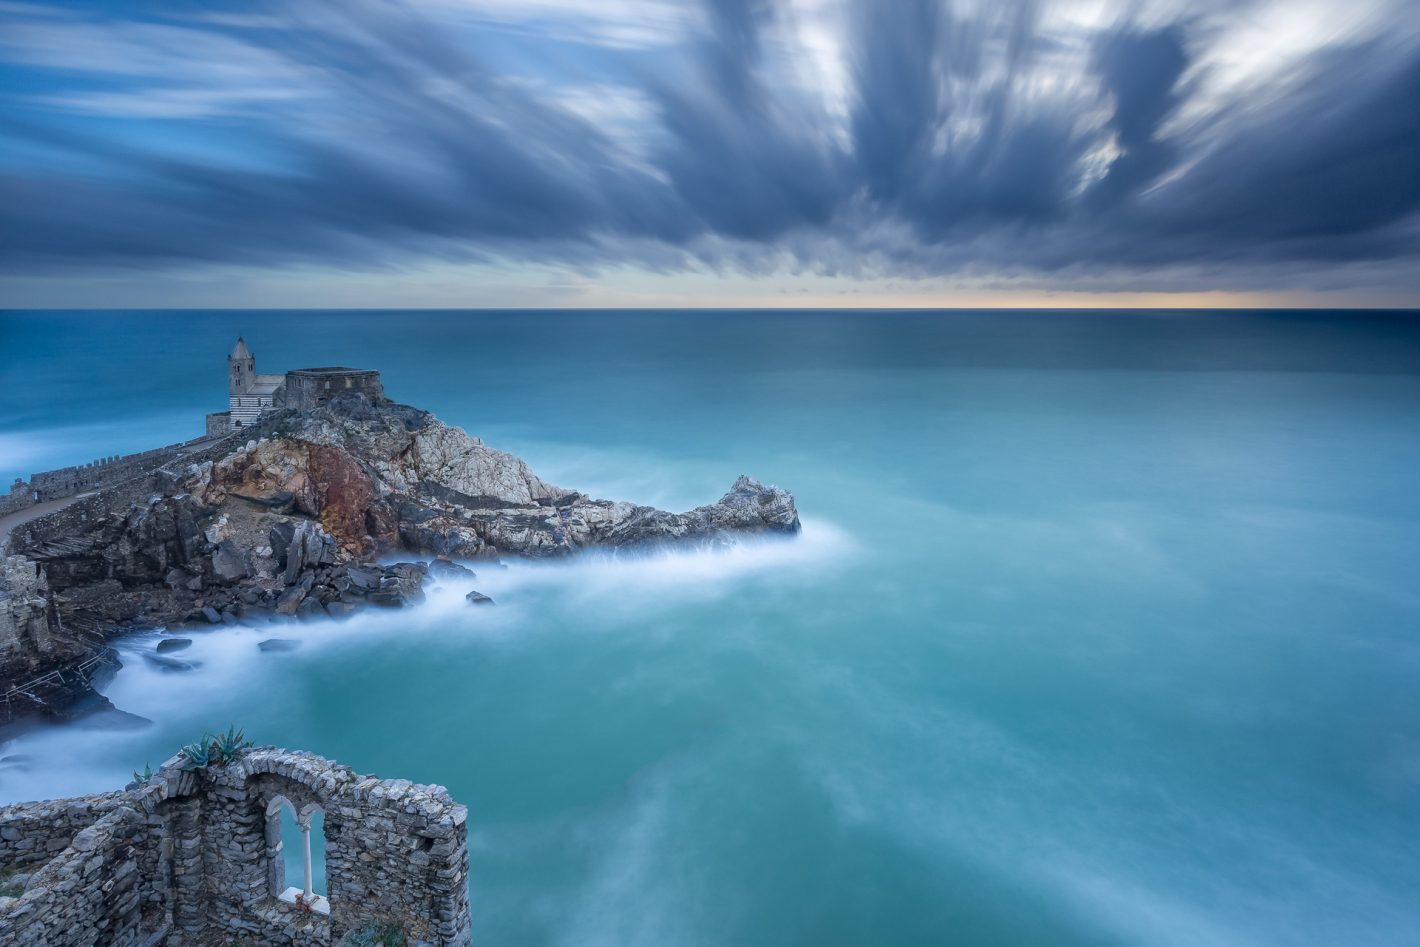 Passion Littoral avec le photographe Francesco Gola - Nikon D810